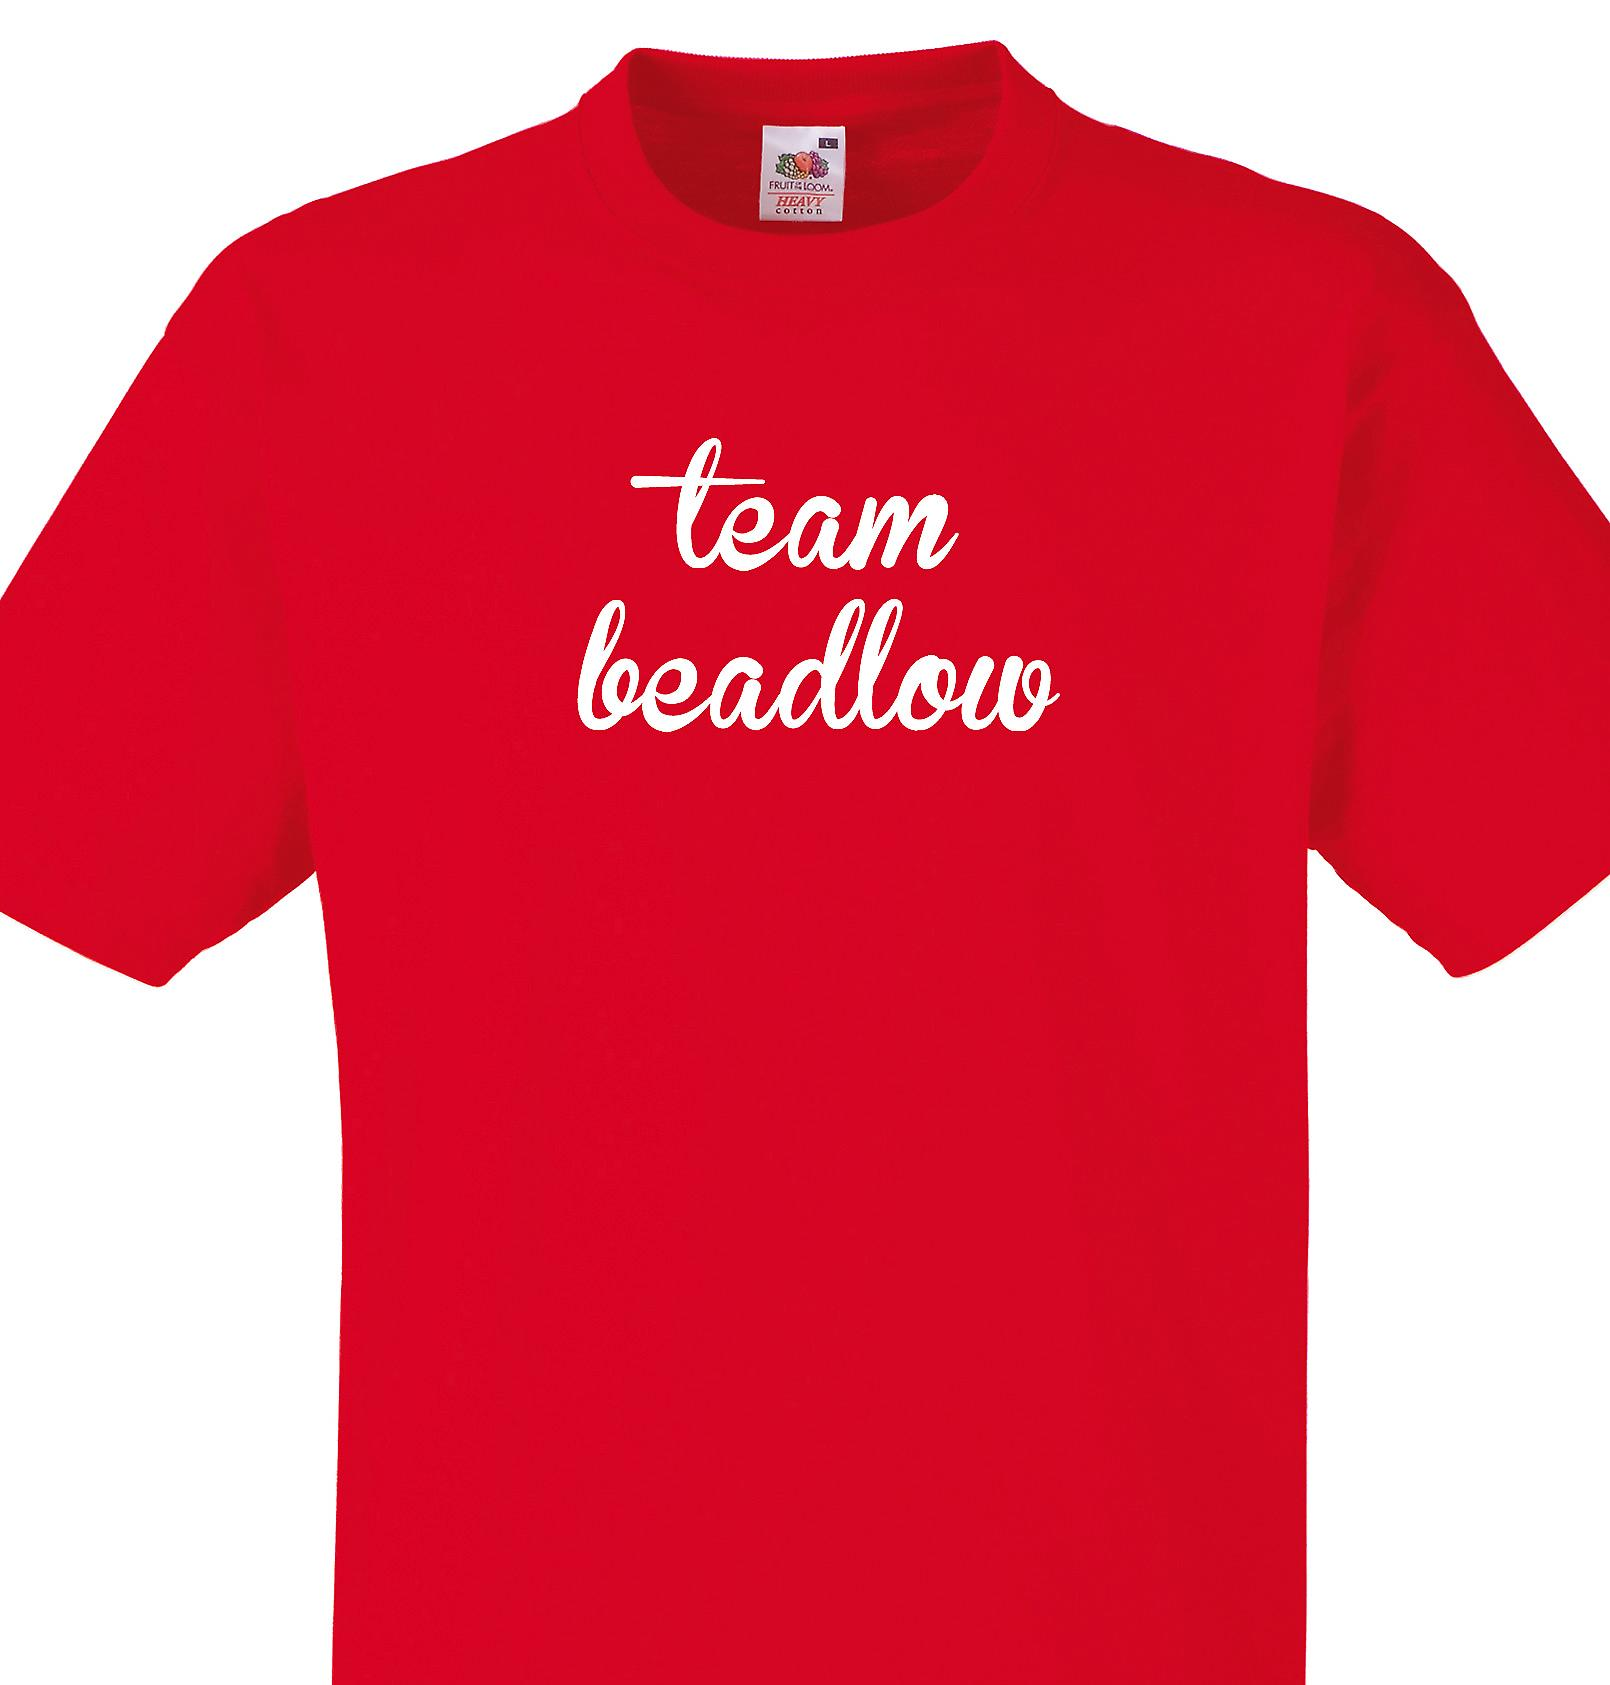 Team Beadlow Red T shirt